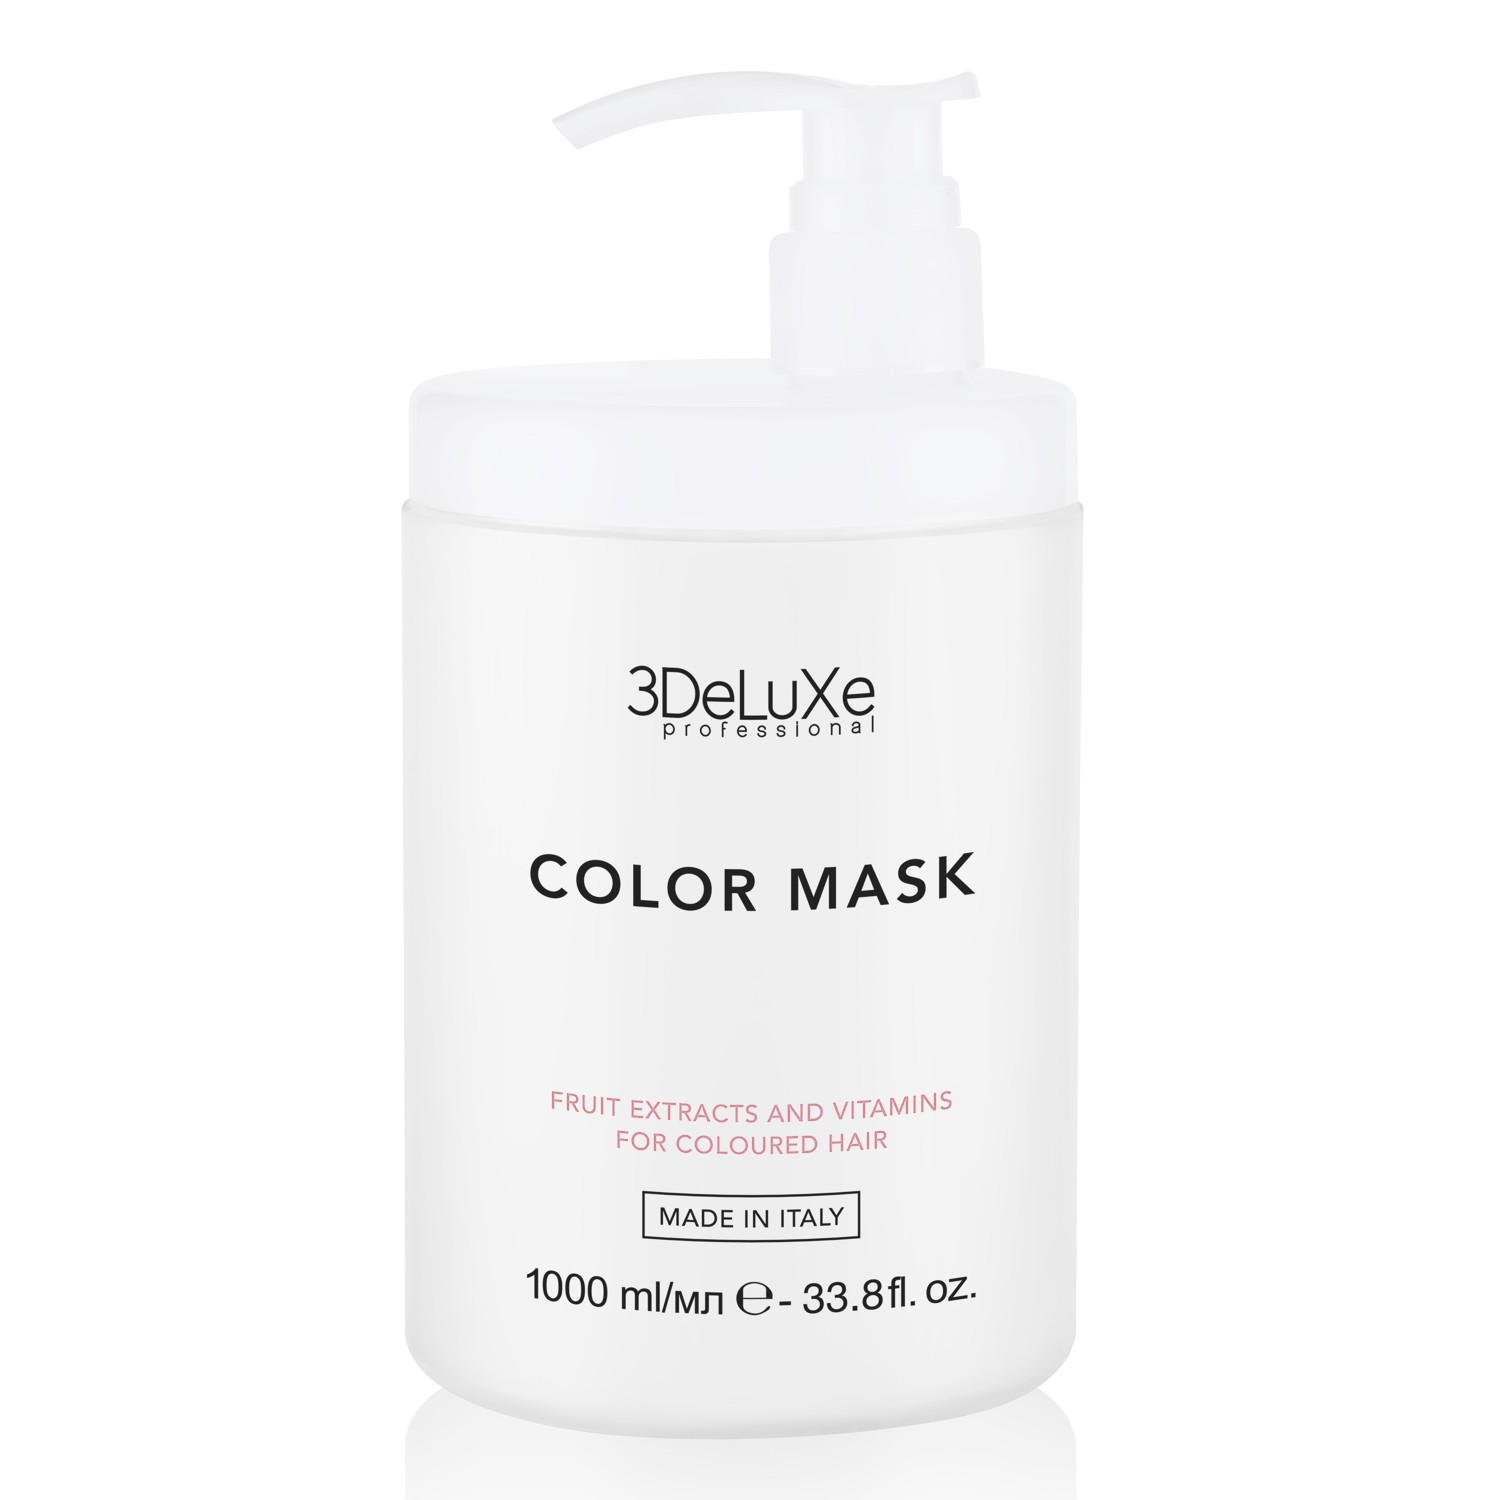 3DeLuXe Professional COLOR Mask 1 L